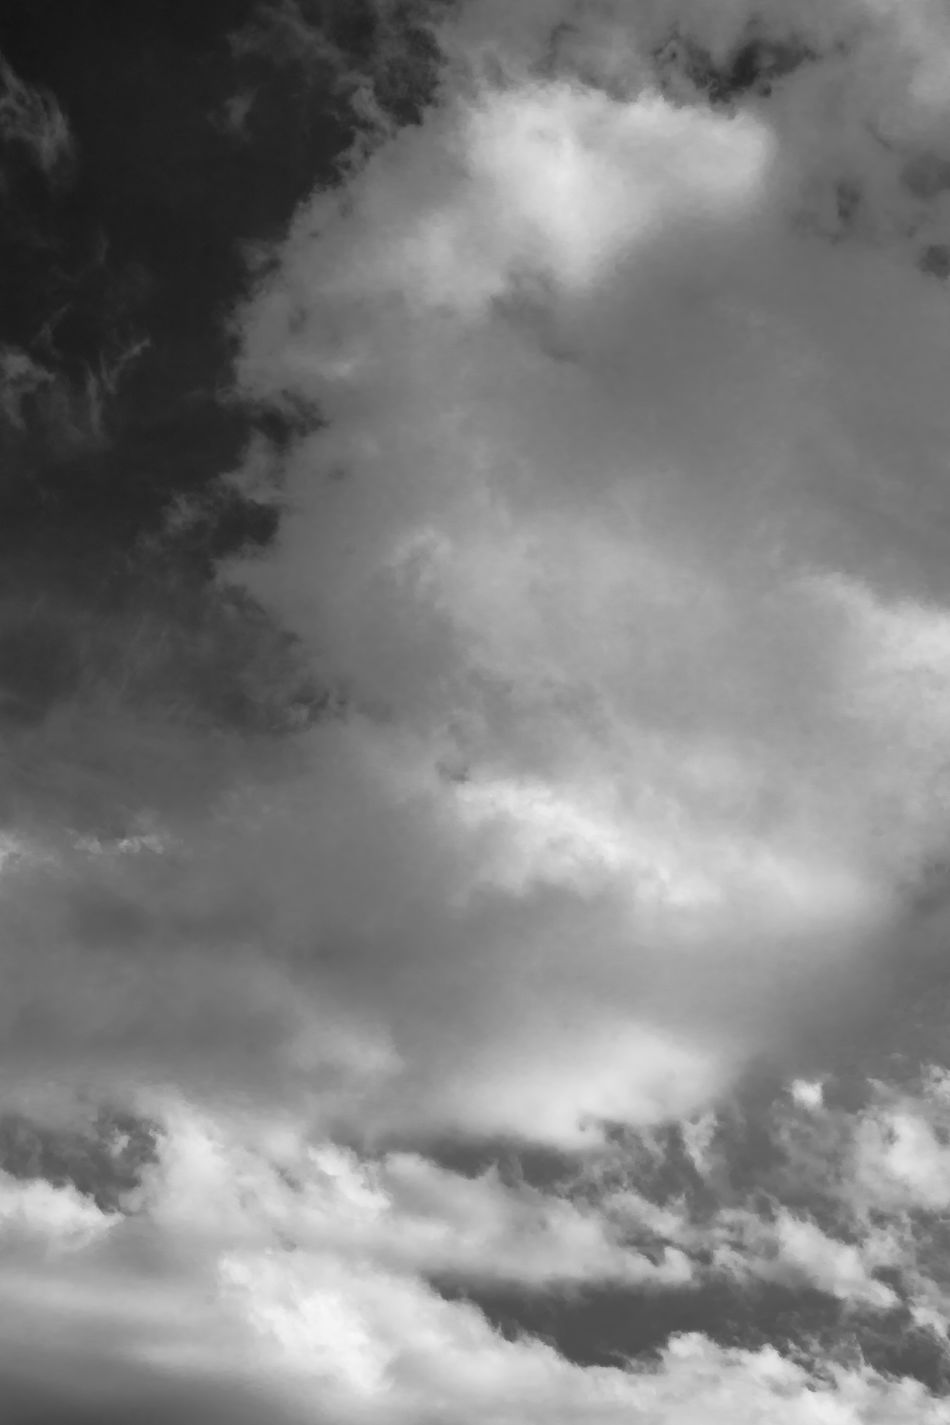 Cloudscape - Spring Day Sky B&w Backgrounds Beauty In Nature Black And White Cloud Cloud - Sky Cloudscape Cumulus Cumulus Cloud Day Dramatic Sky Low Angle View Nature No People Outdoors Scenics Sky Sky Only Spring Sky Storm Cloud Tranquility Weather